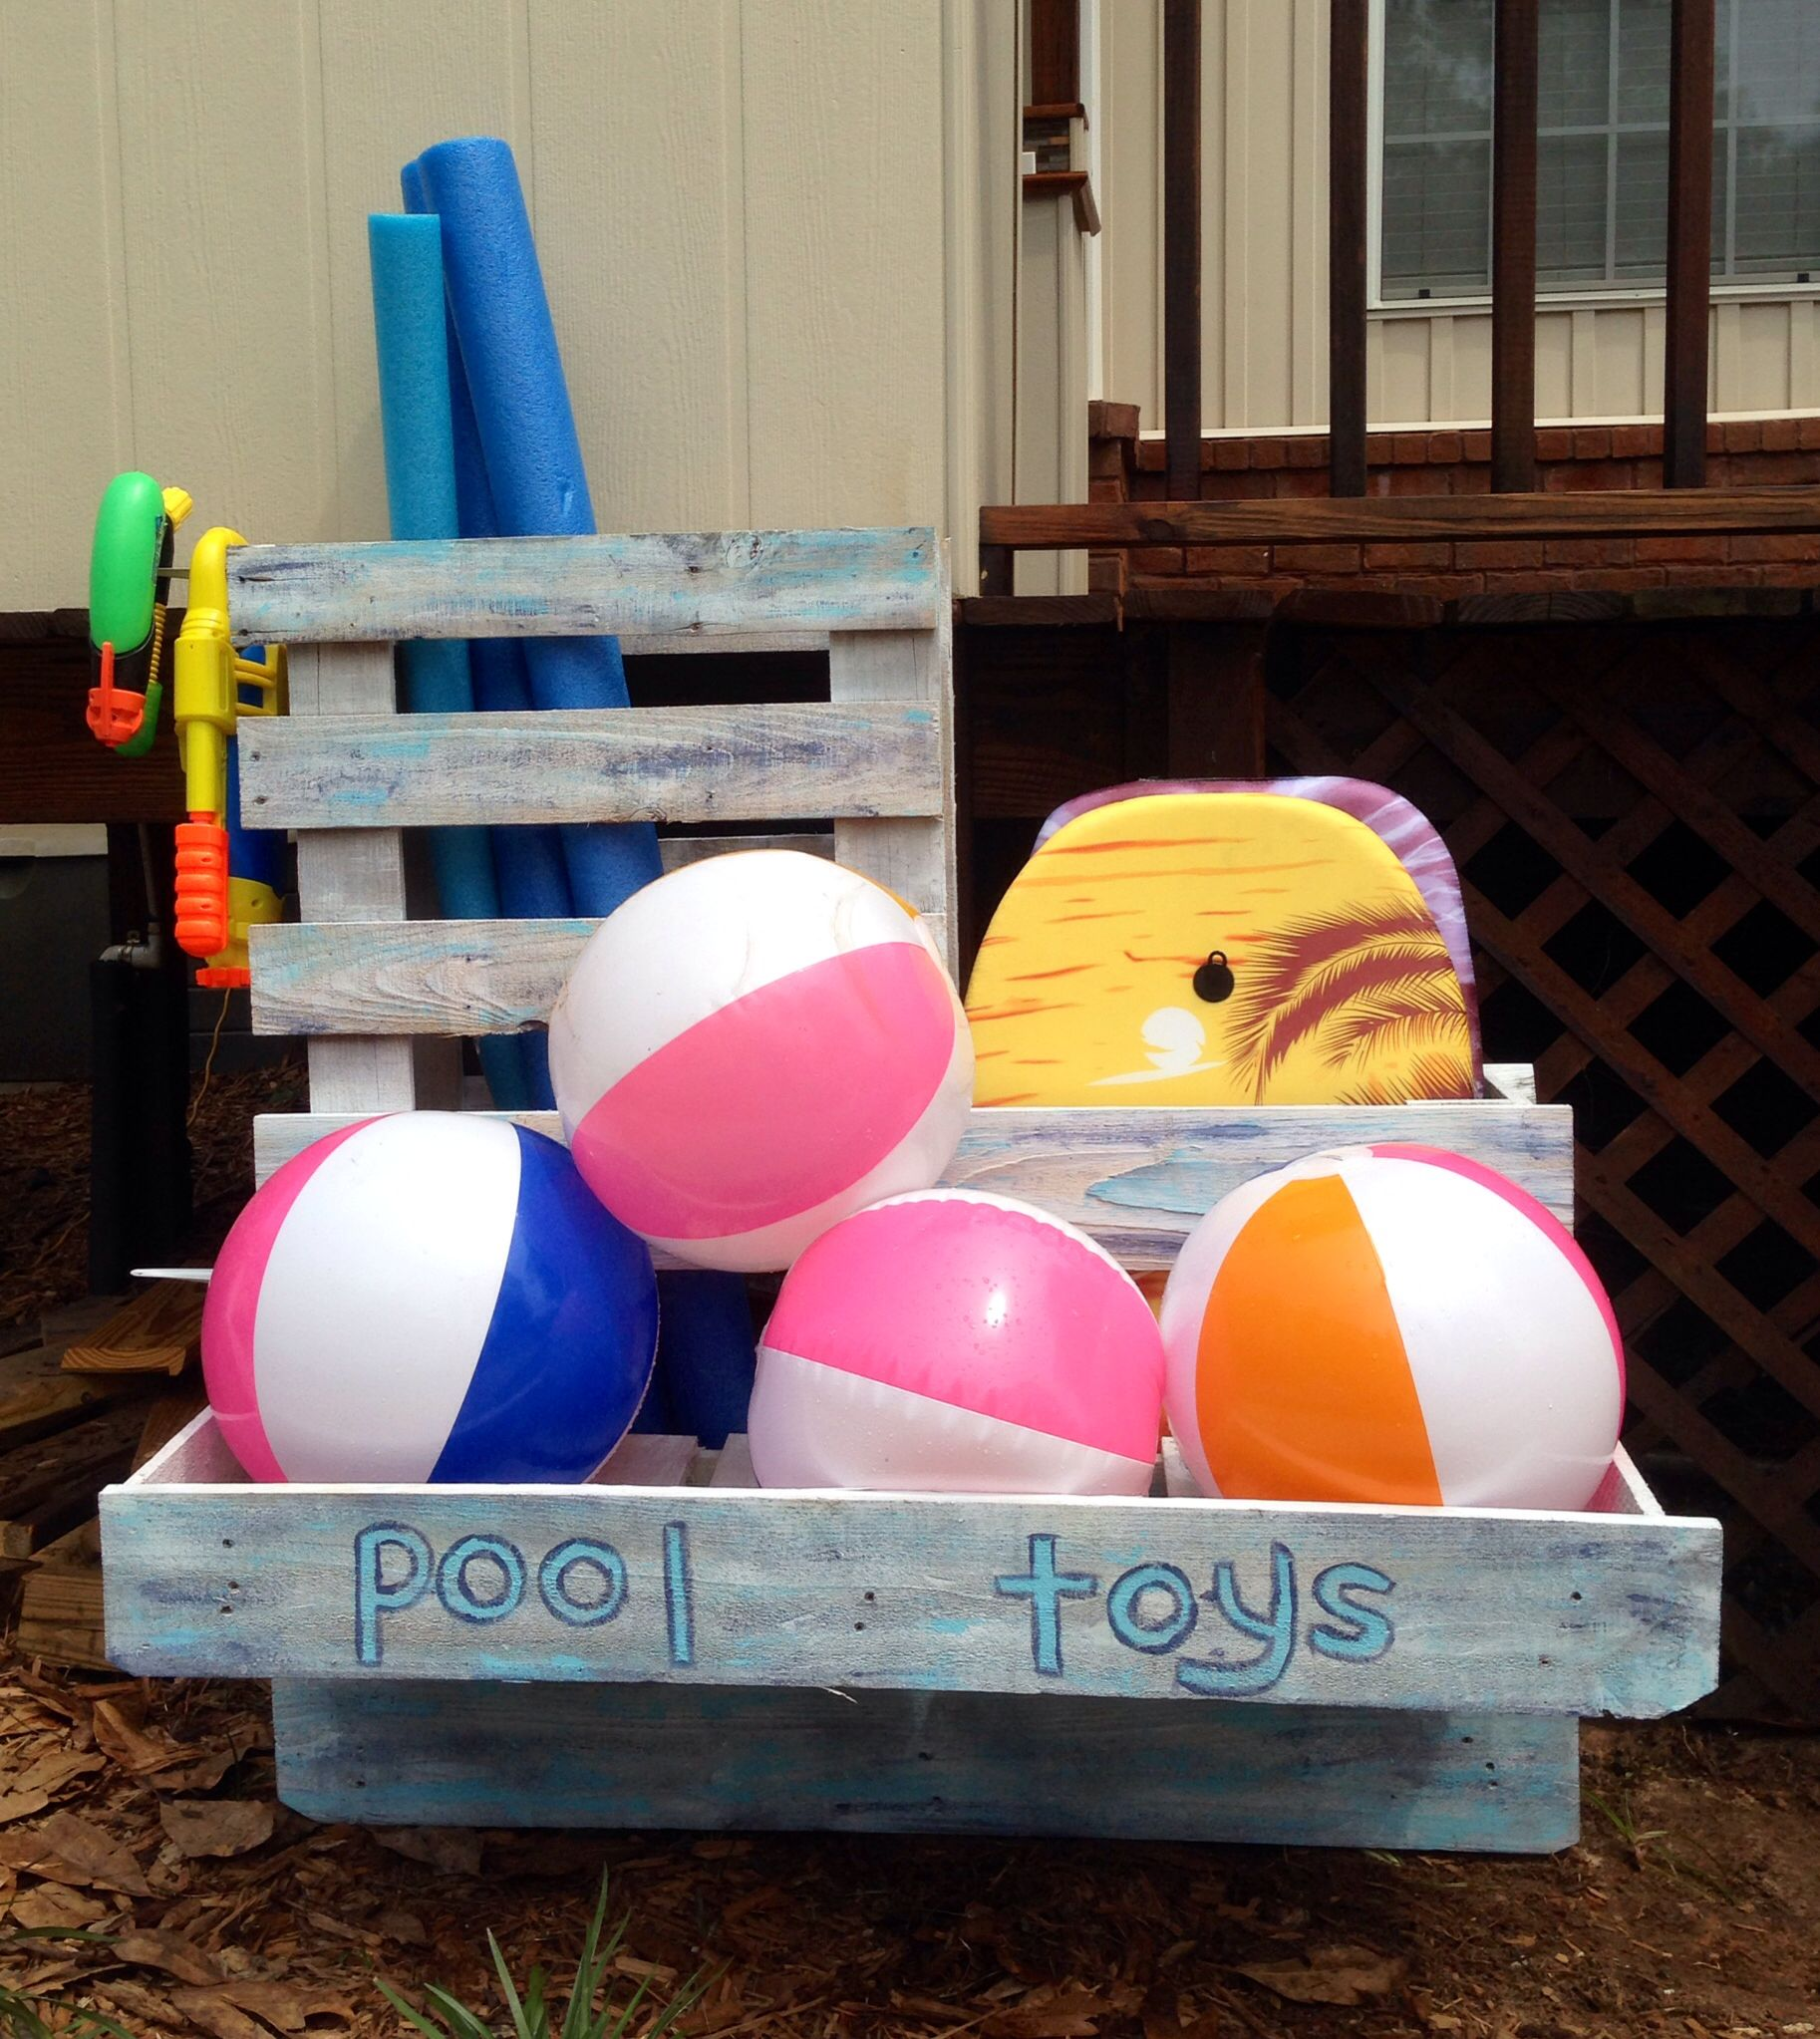 Pool Toy Storage Diy: Pool Toy Organizer I Made From Pallets